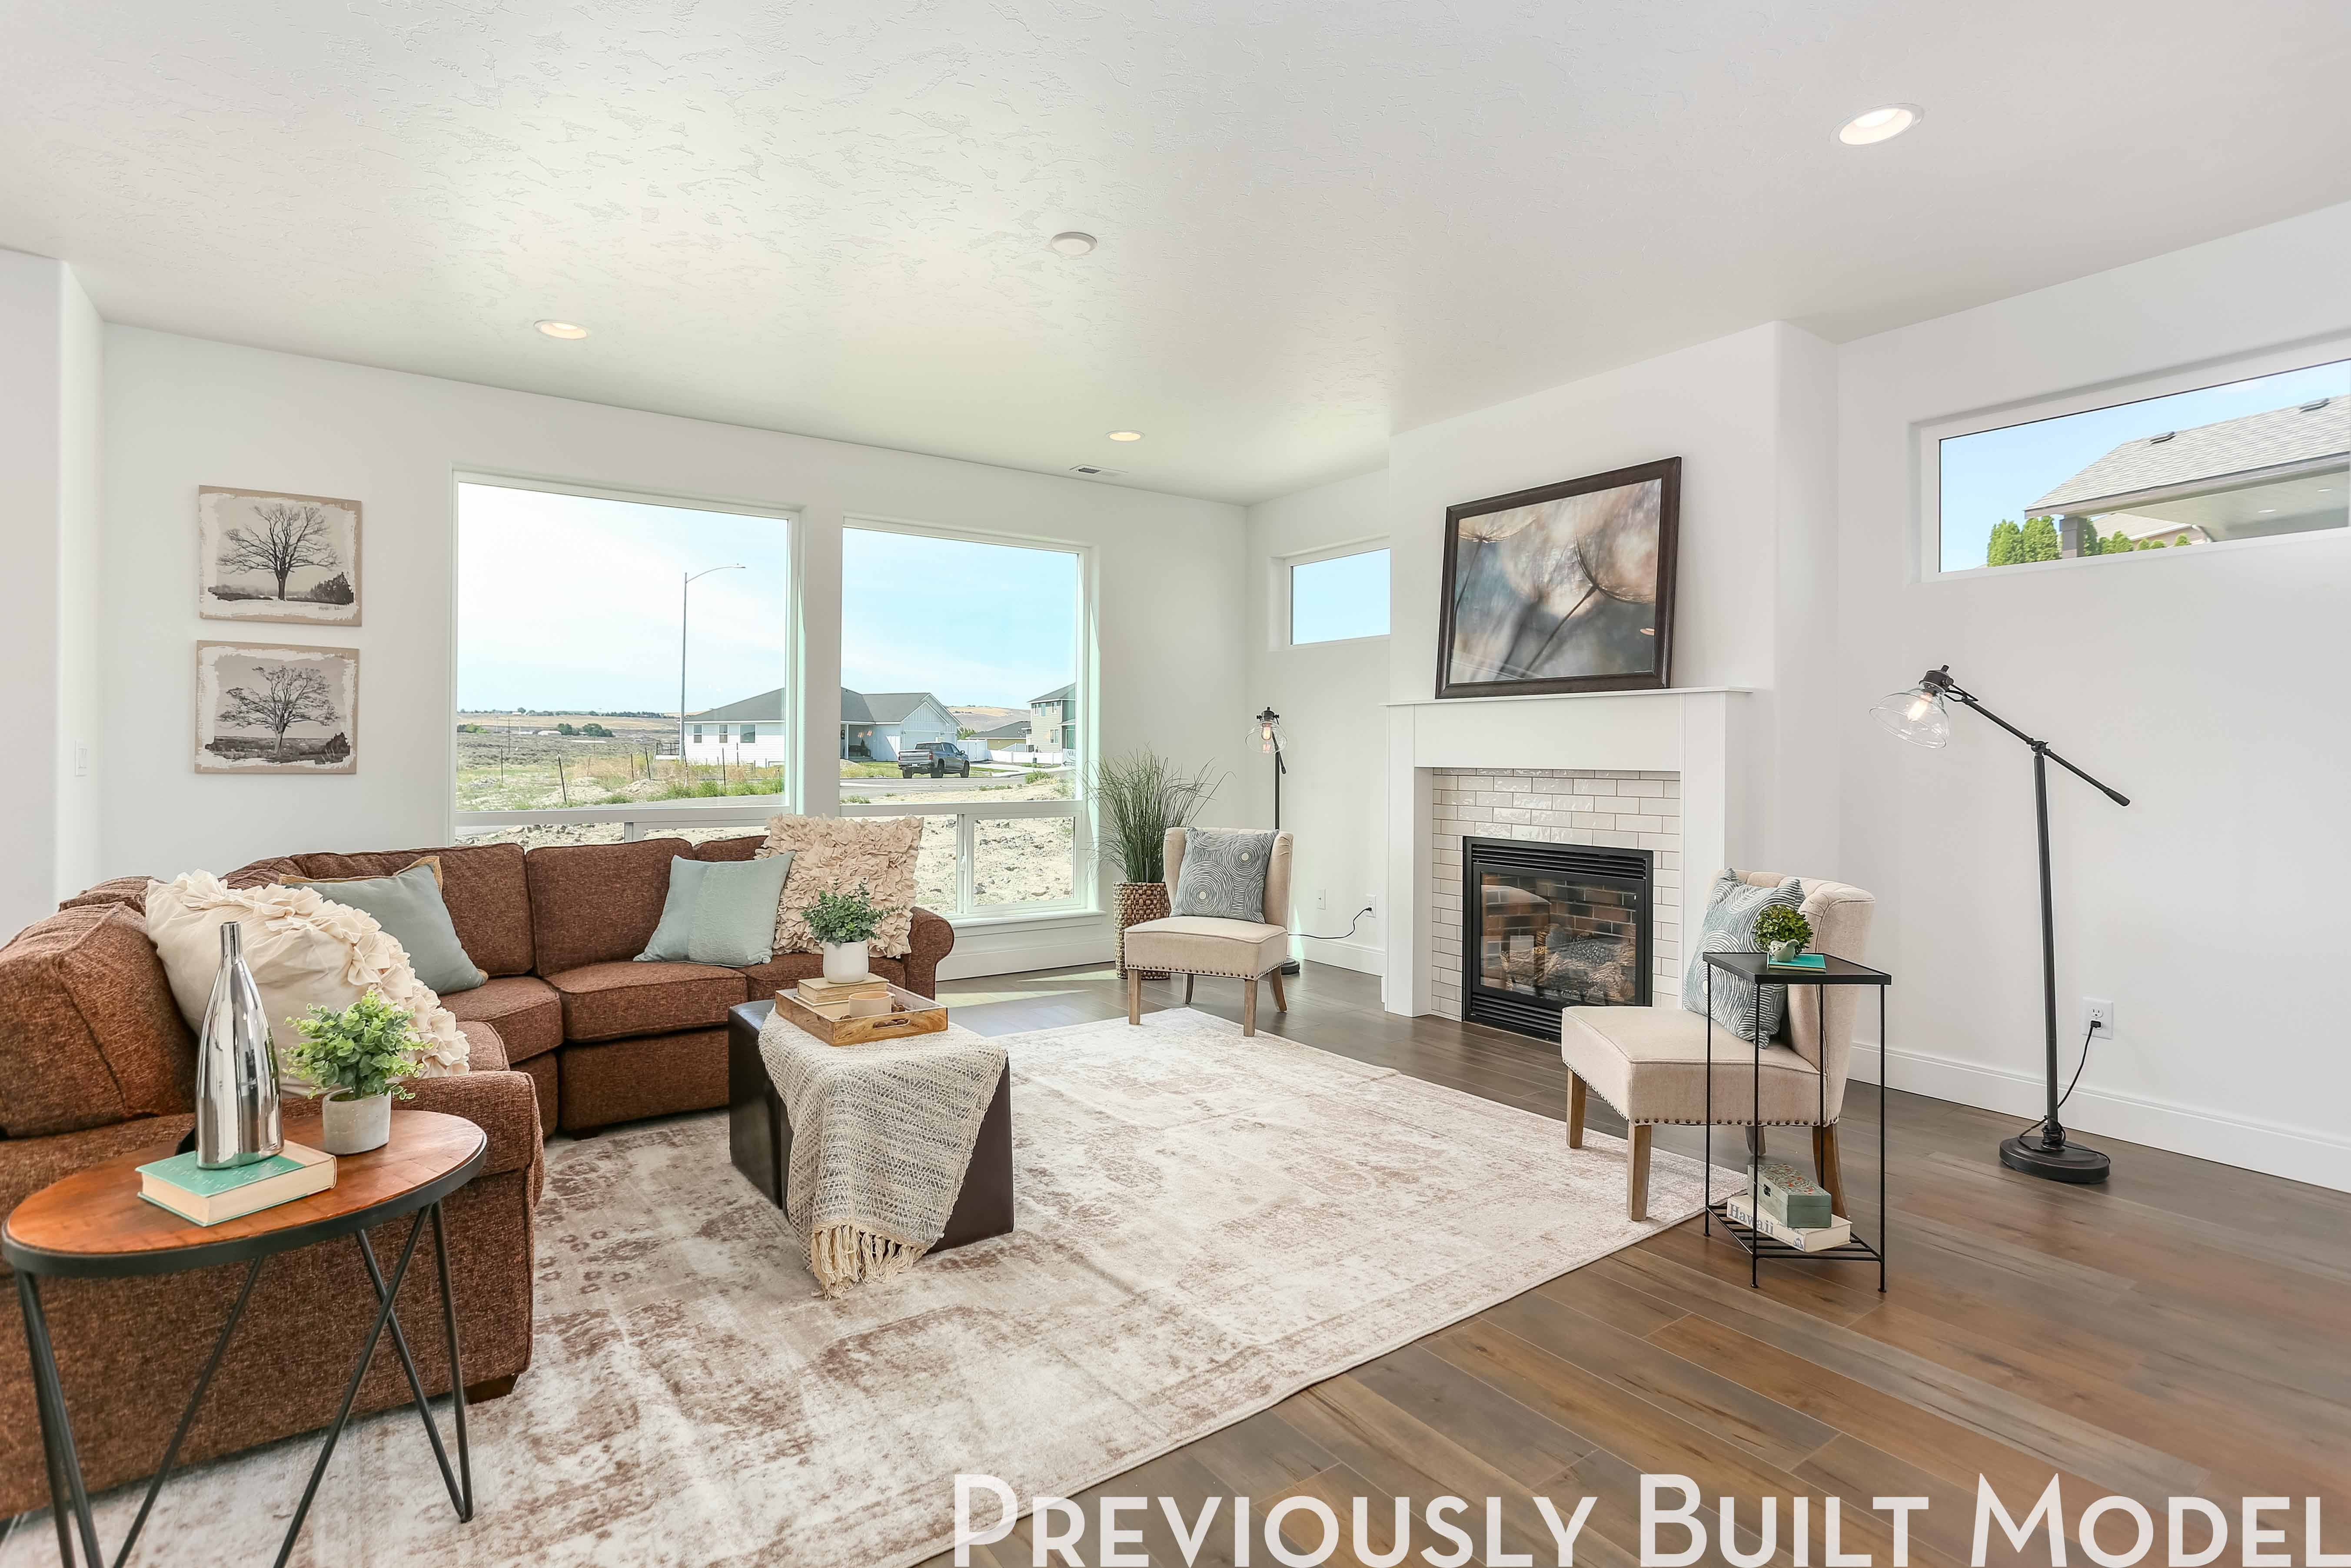 Living Area featured in The Savannah By RYN Built Homes in Spokane-Couer d Alene, WA